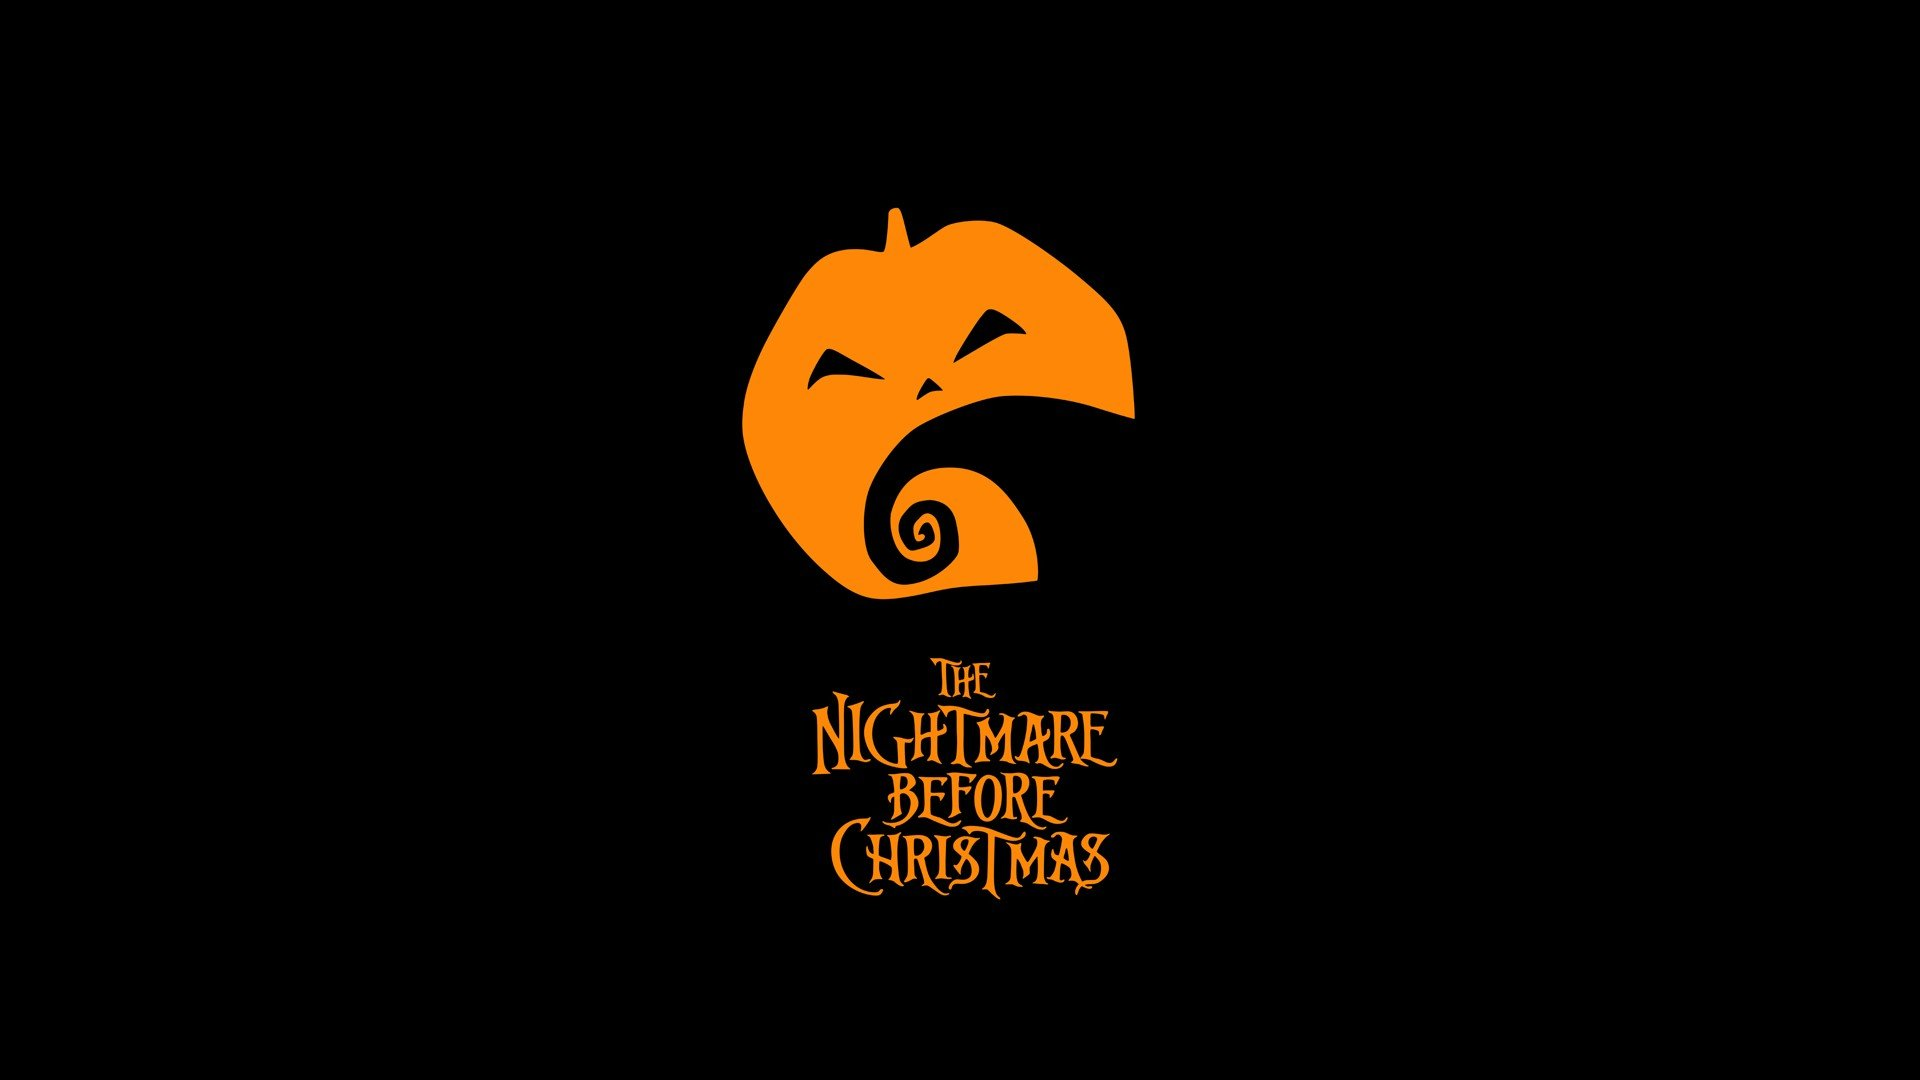 The Nightmare Before Christmas Wallpapers 1920x1080 Full Hd 1080p